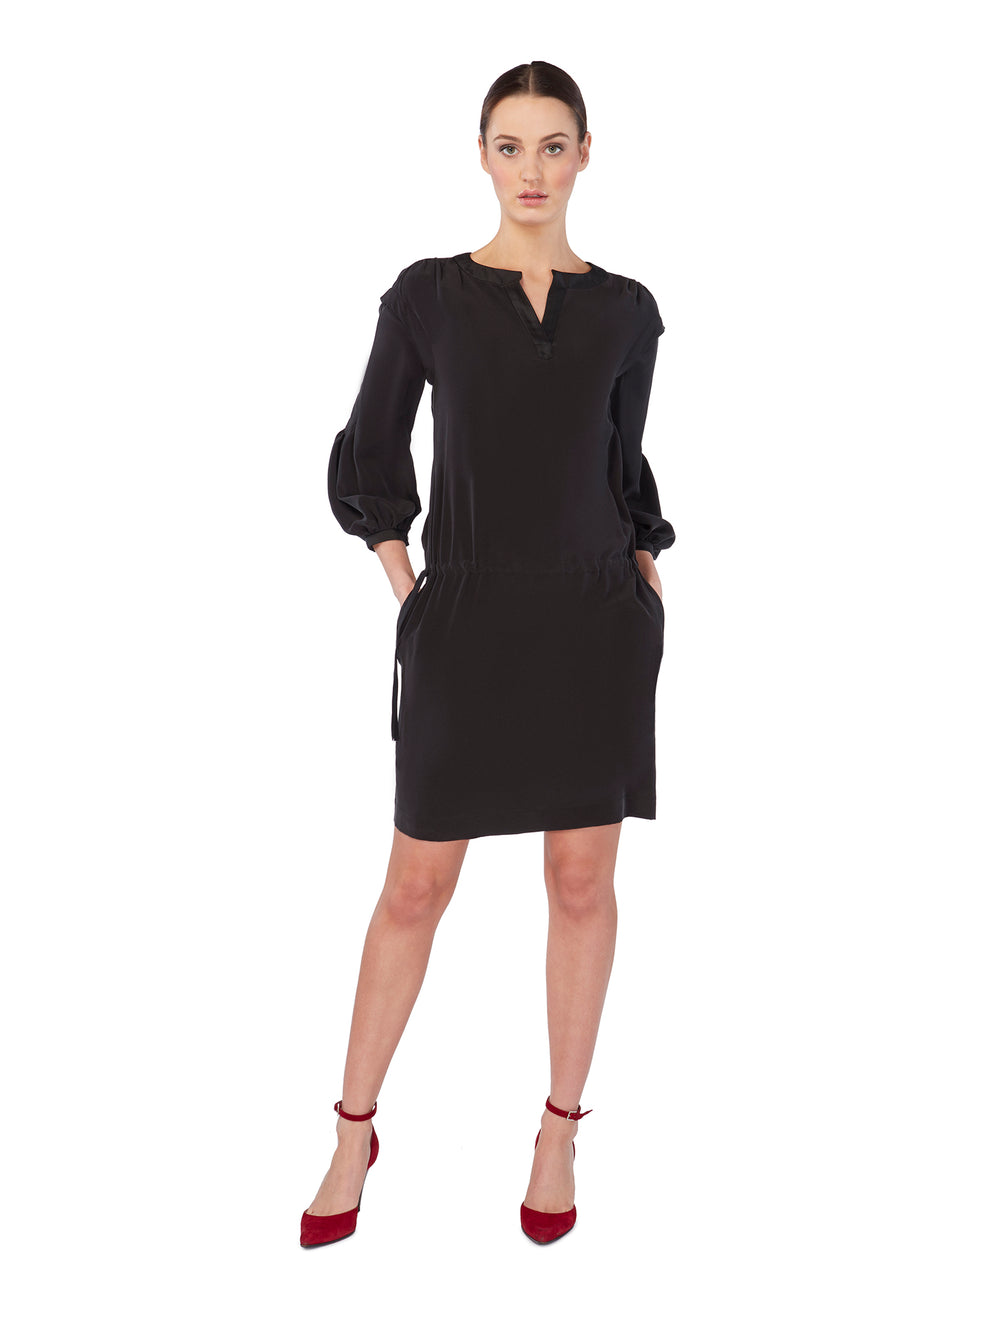 D028 _ MOKARA _ 2-Way Shift Dress _ Black